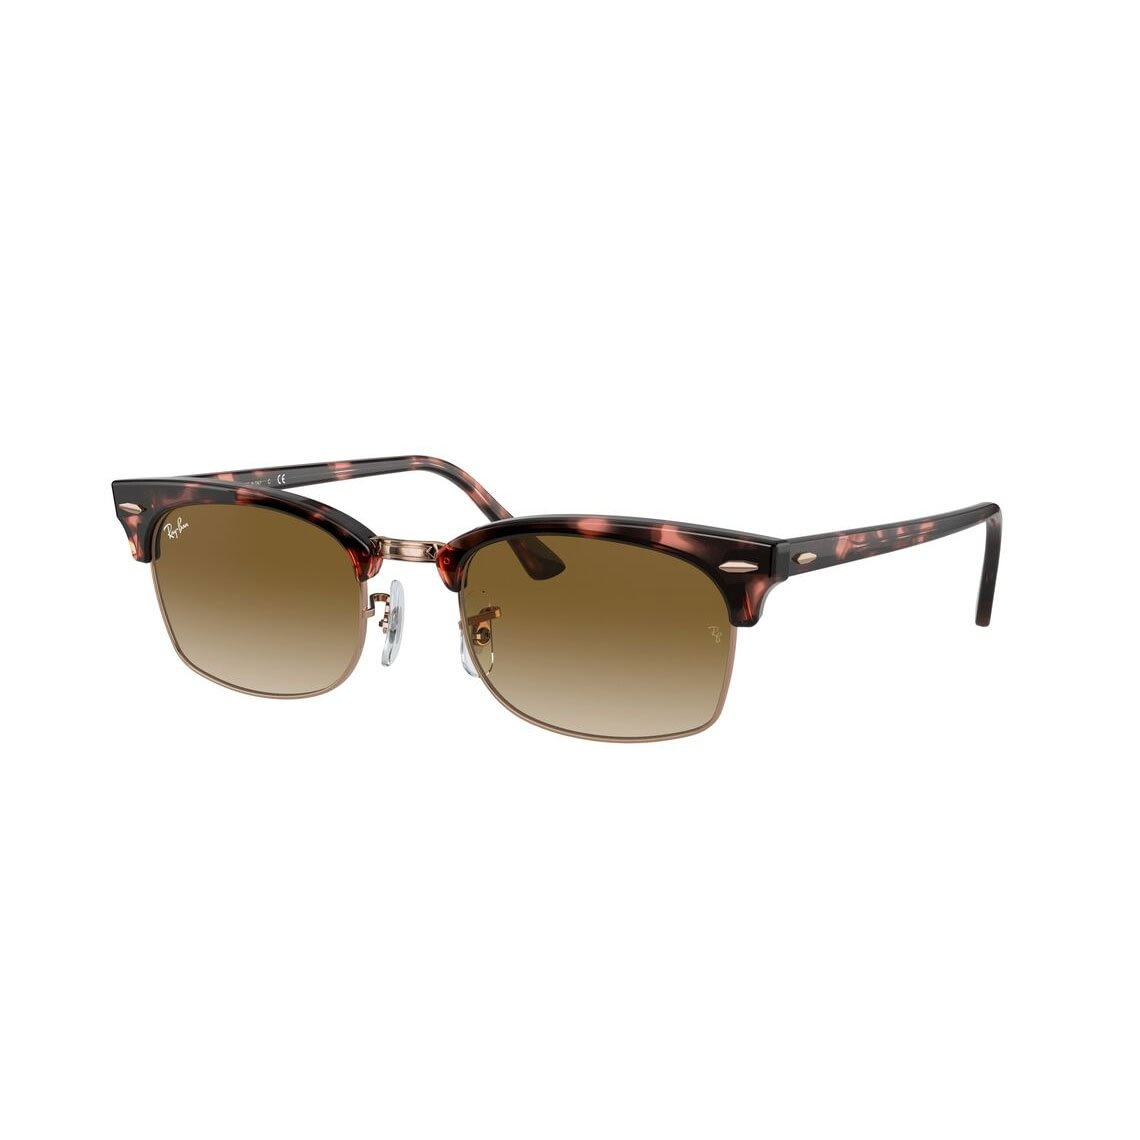 Ray-Ban Clubmaster Square RB3916 133751 5221